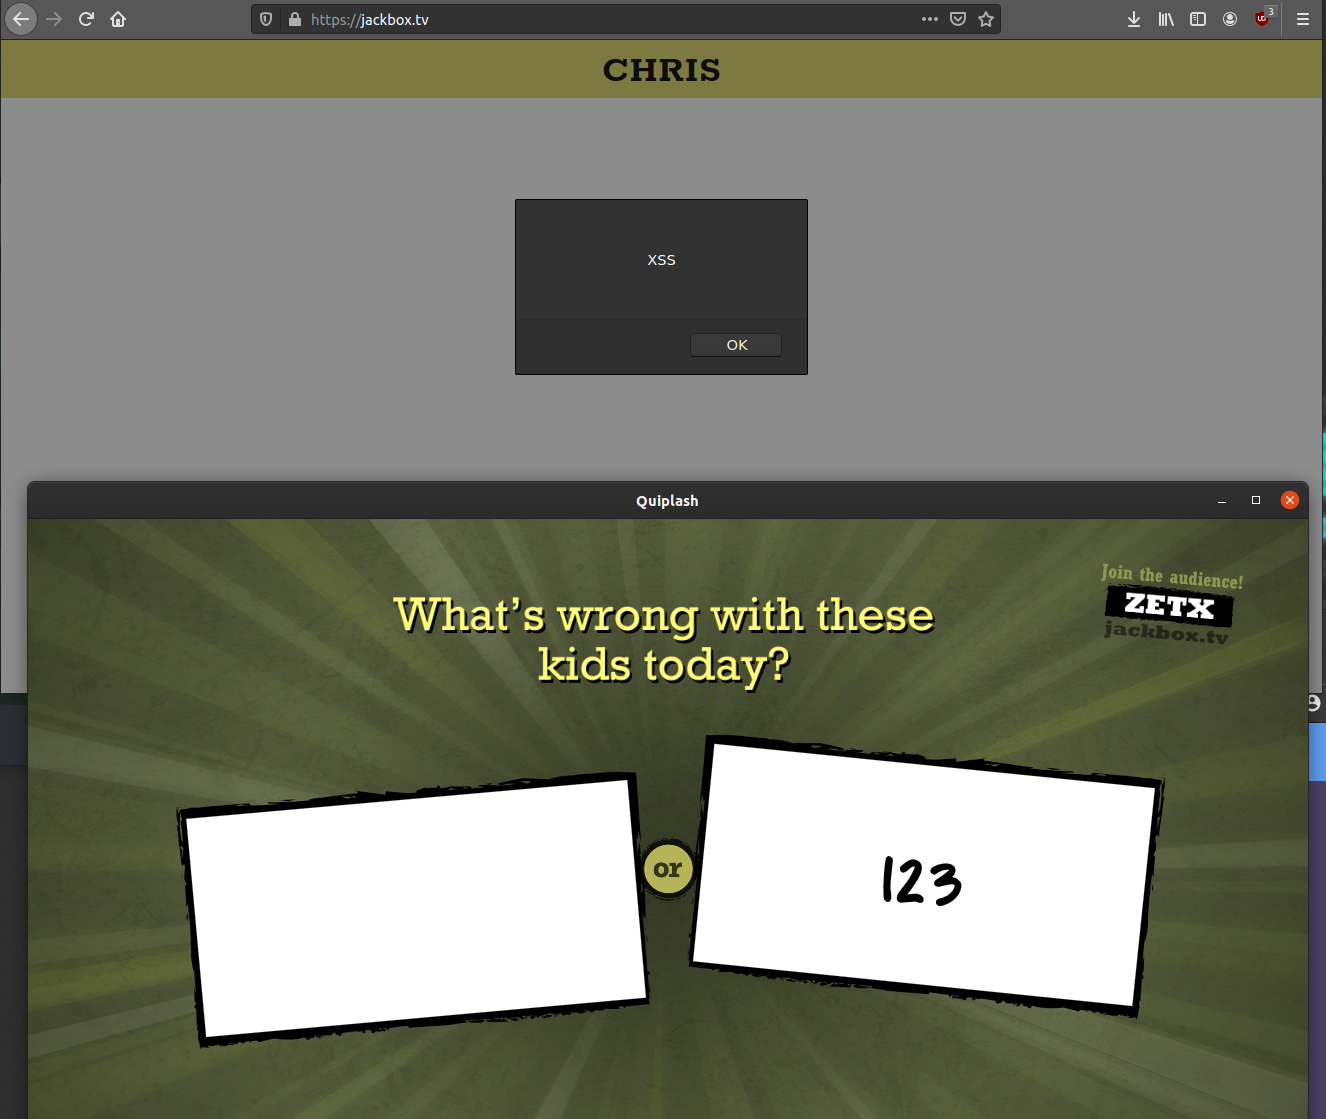 XSSLash - A Tale of Playing Quiplash at Work